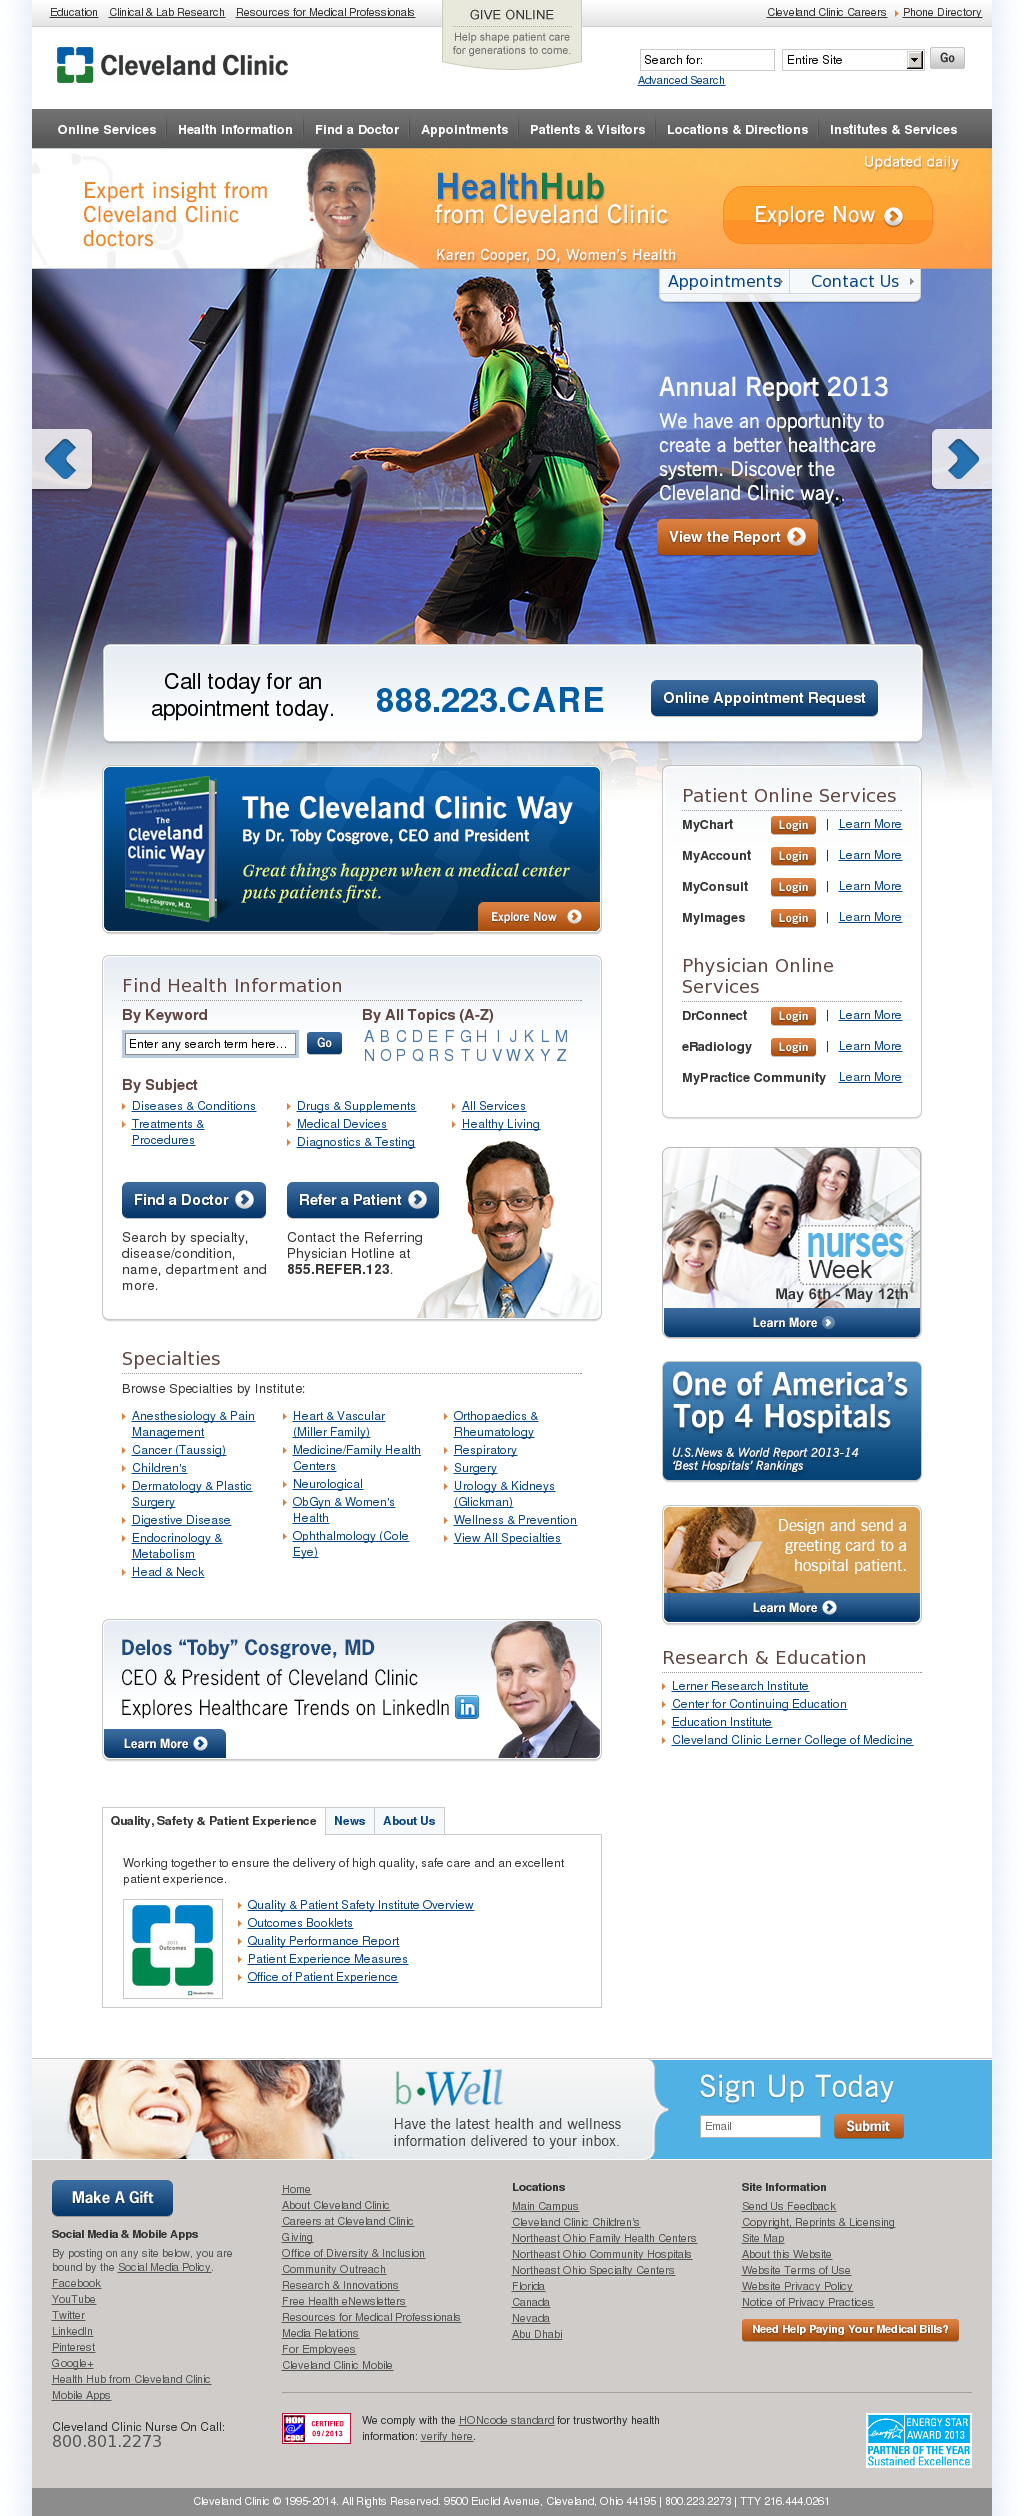 Cleveland Clinic Competitors, Revenue and Employees - Owler